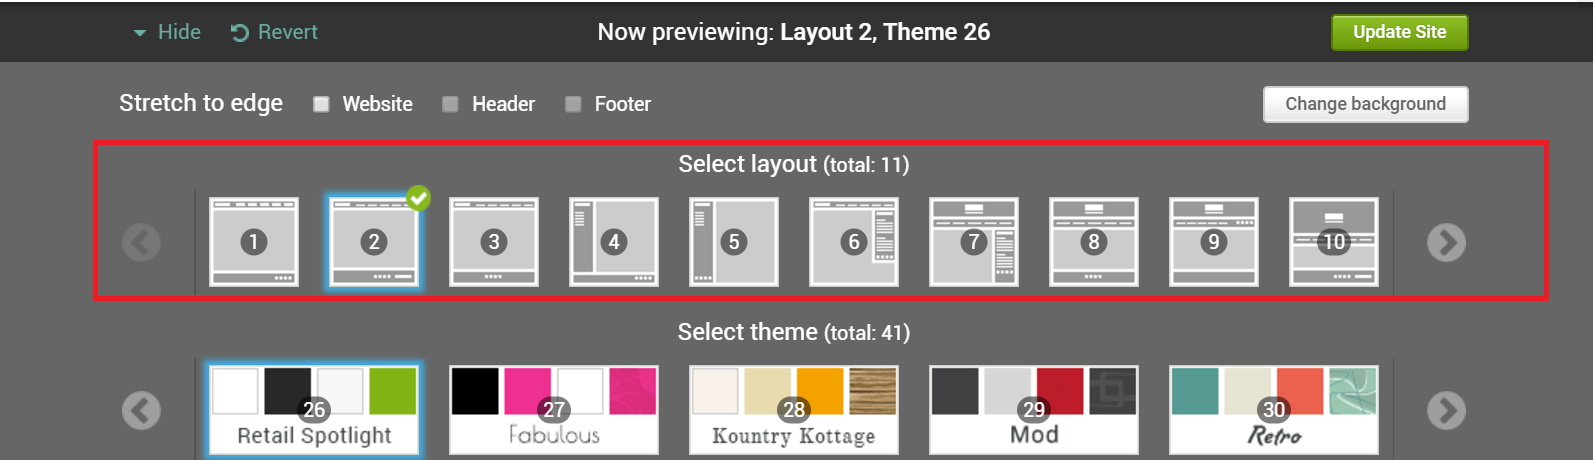 select-layout-new-1.png